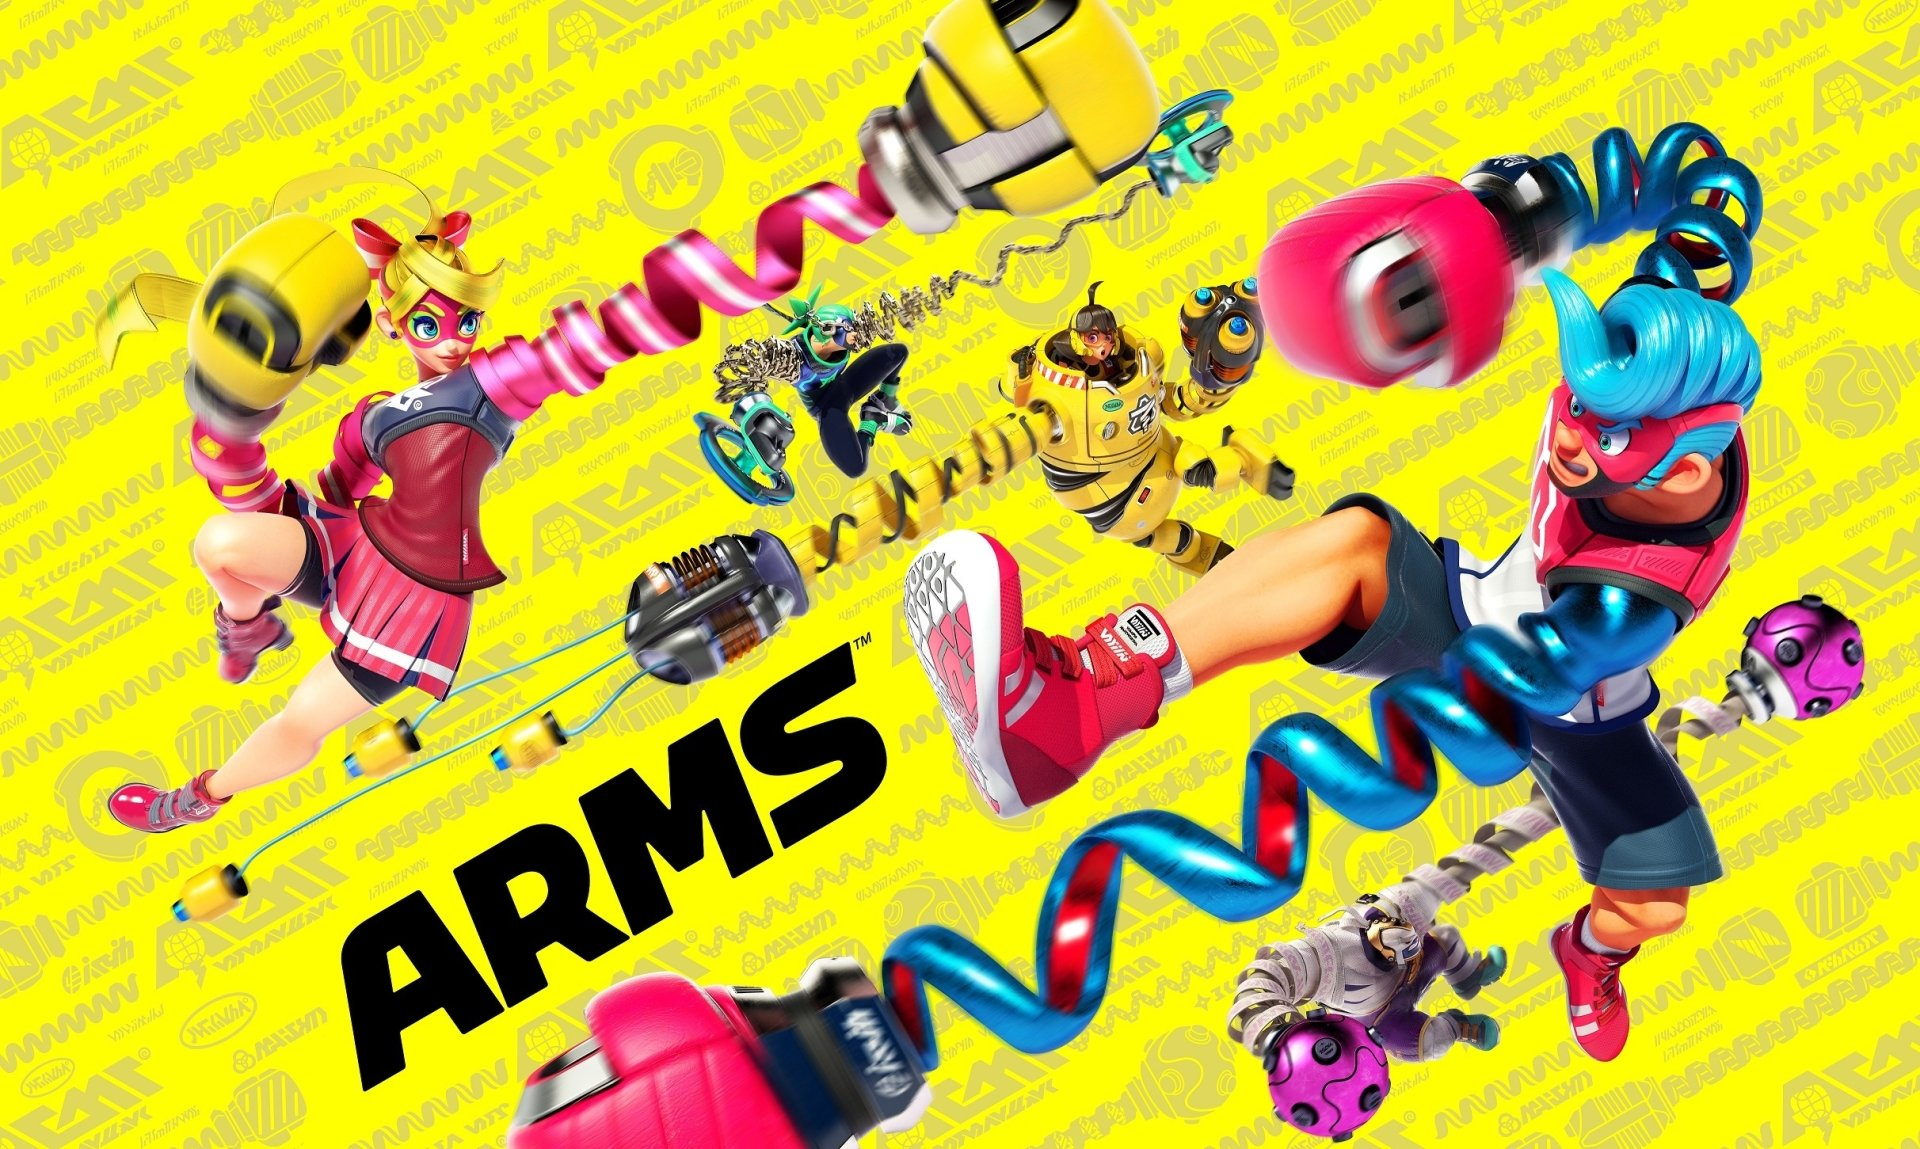 Video Game - Arms  Master Mummy (Arms) Mechanica (Arms) Ribbon Girl (Arms) Spring Man (Arms) Ninjara (Arms) Wallpaper